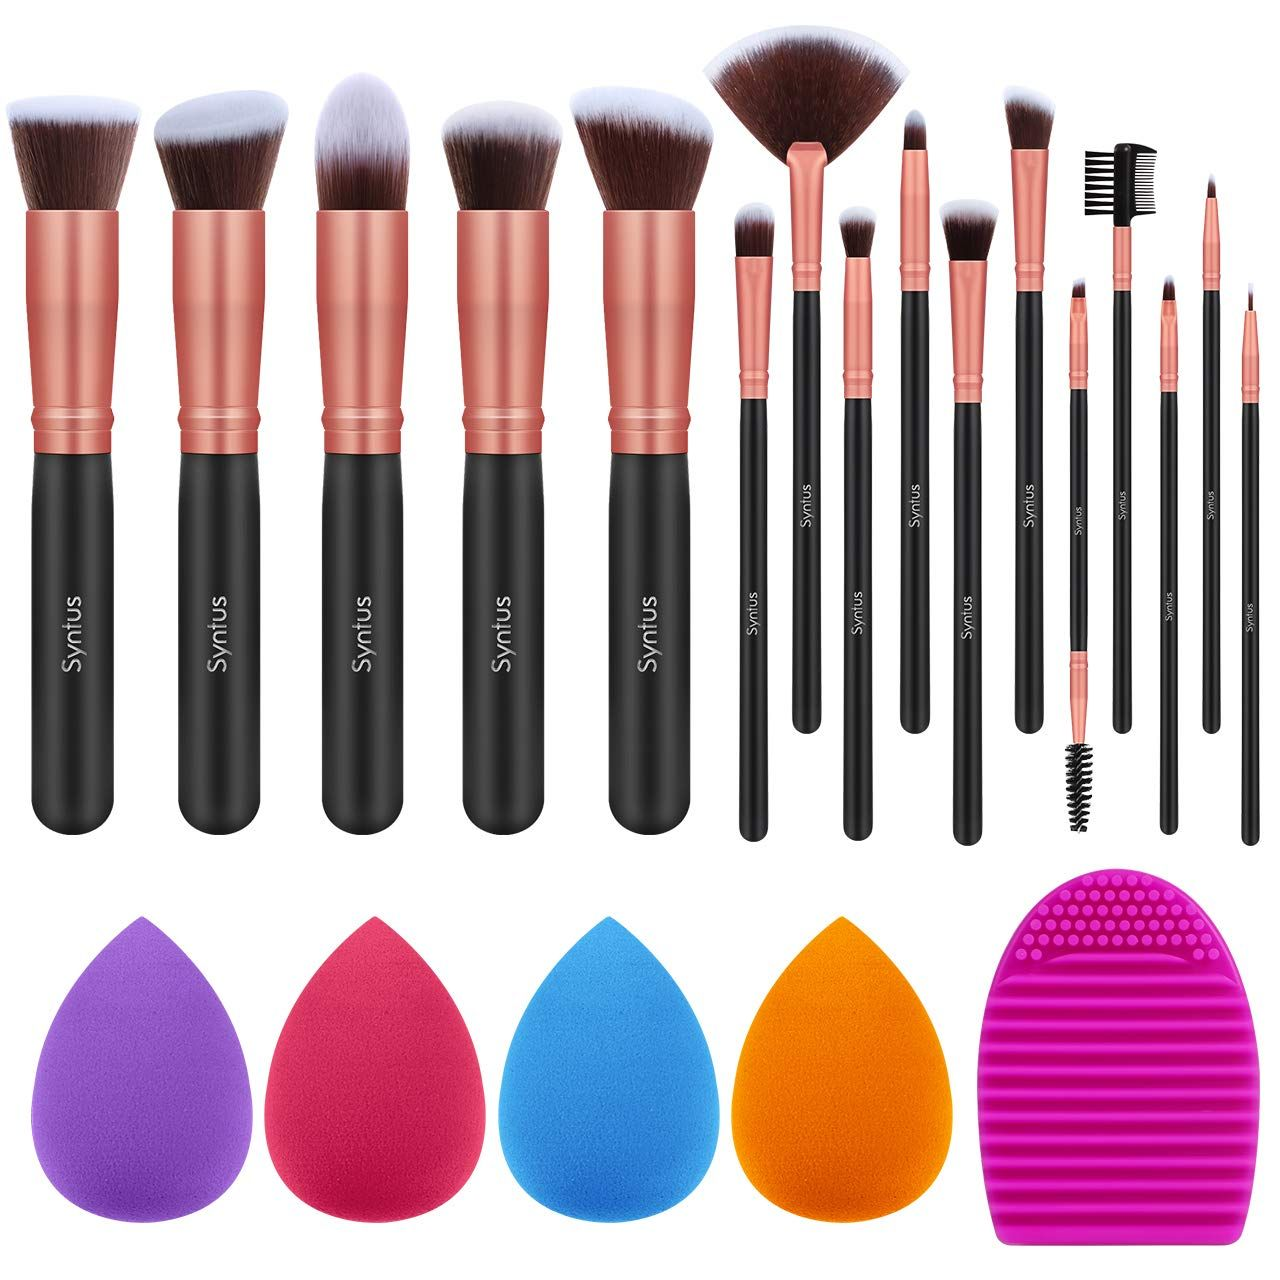 Check out this Amazon deal Syntus Makeup Brush Set, 16